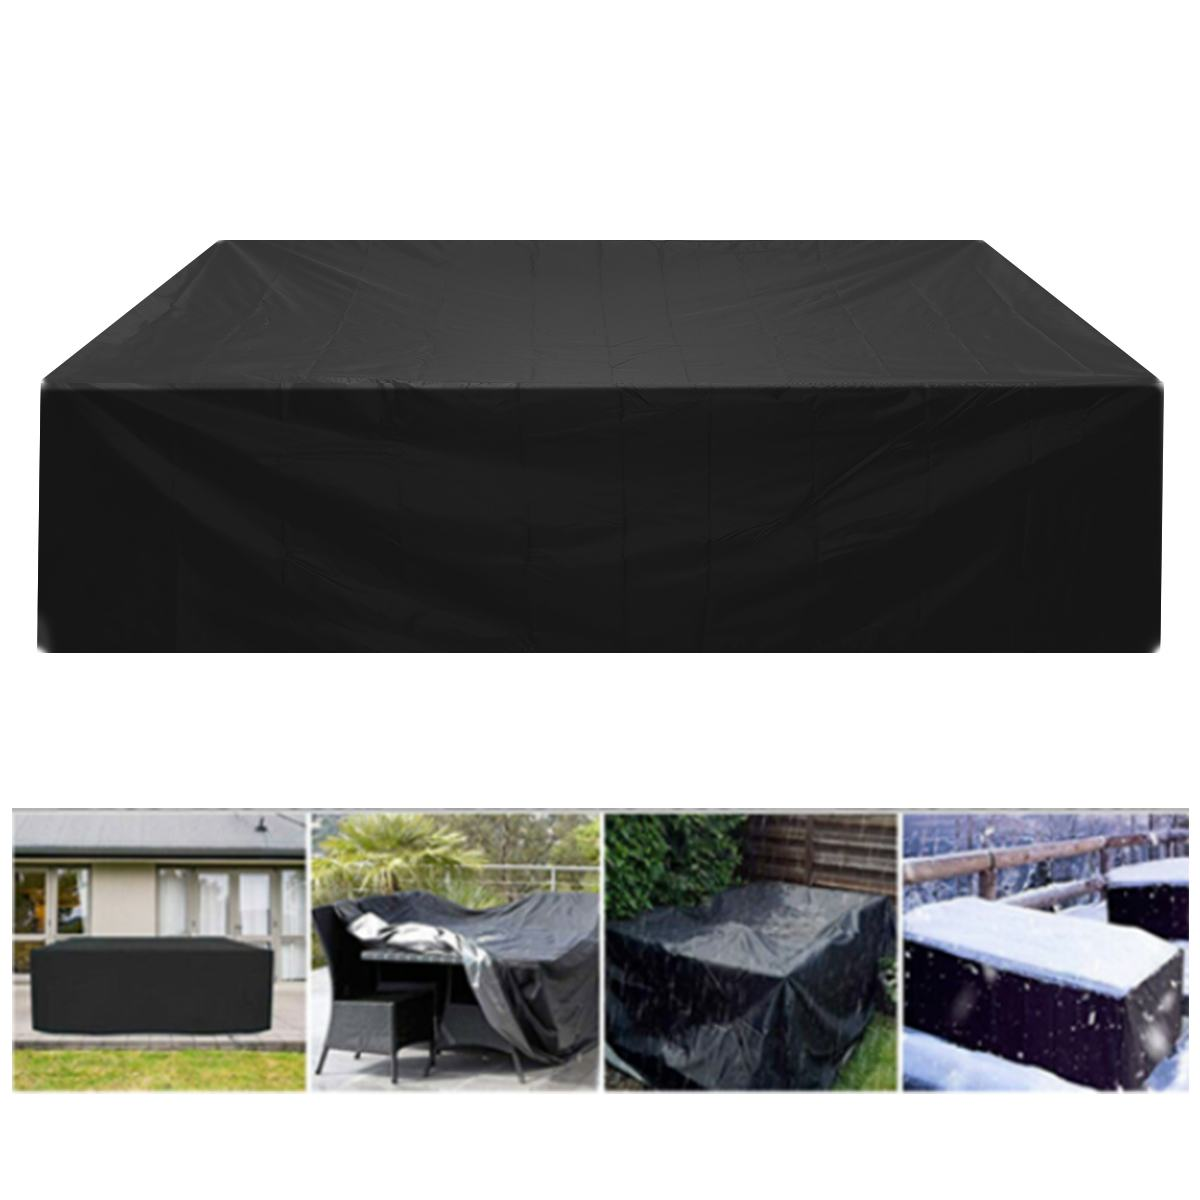 Patio Furniture Covers Waterproof Table Chair Cover Anti Dust Rain UV Polyester Adjustable Elastic Drawstring Protective Case